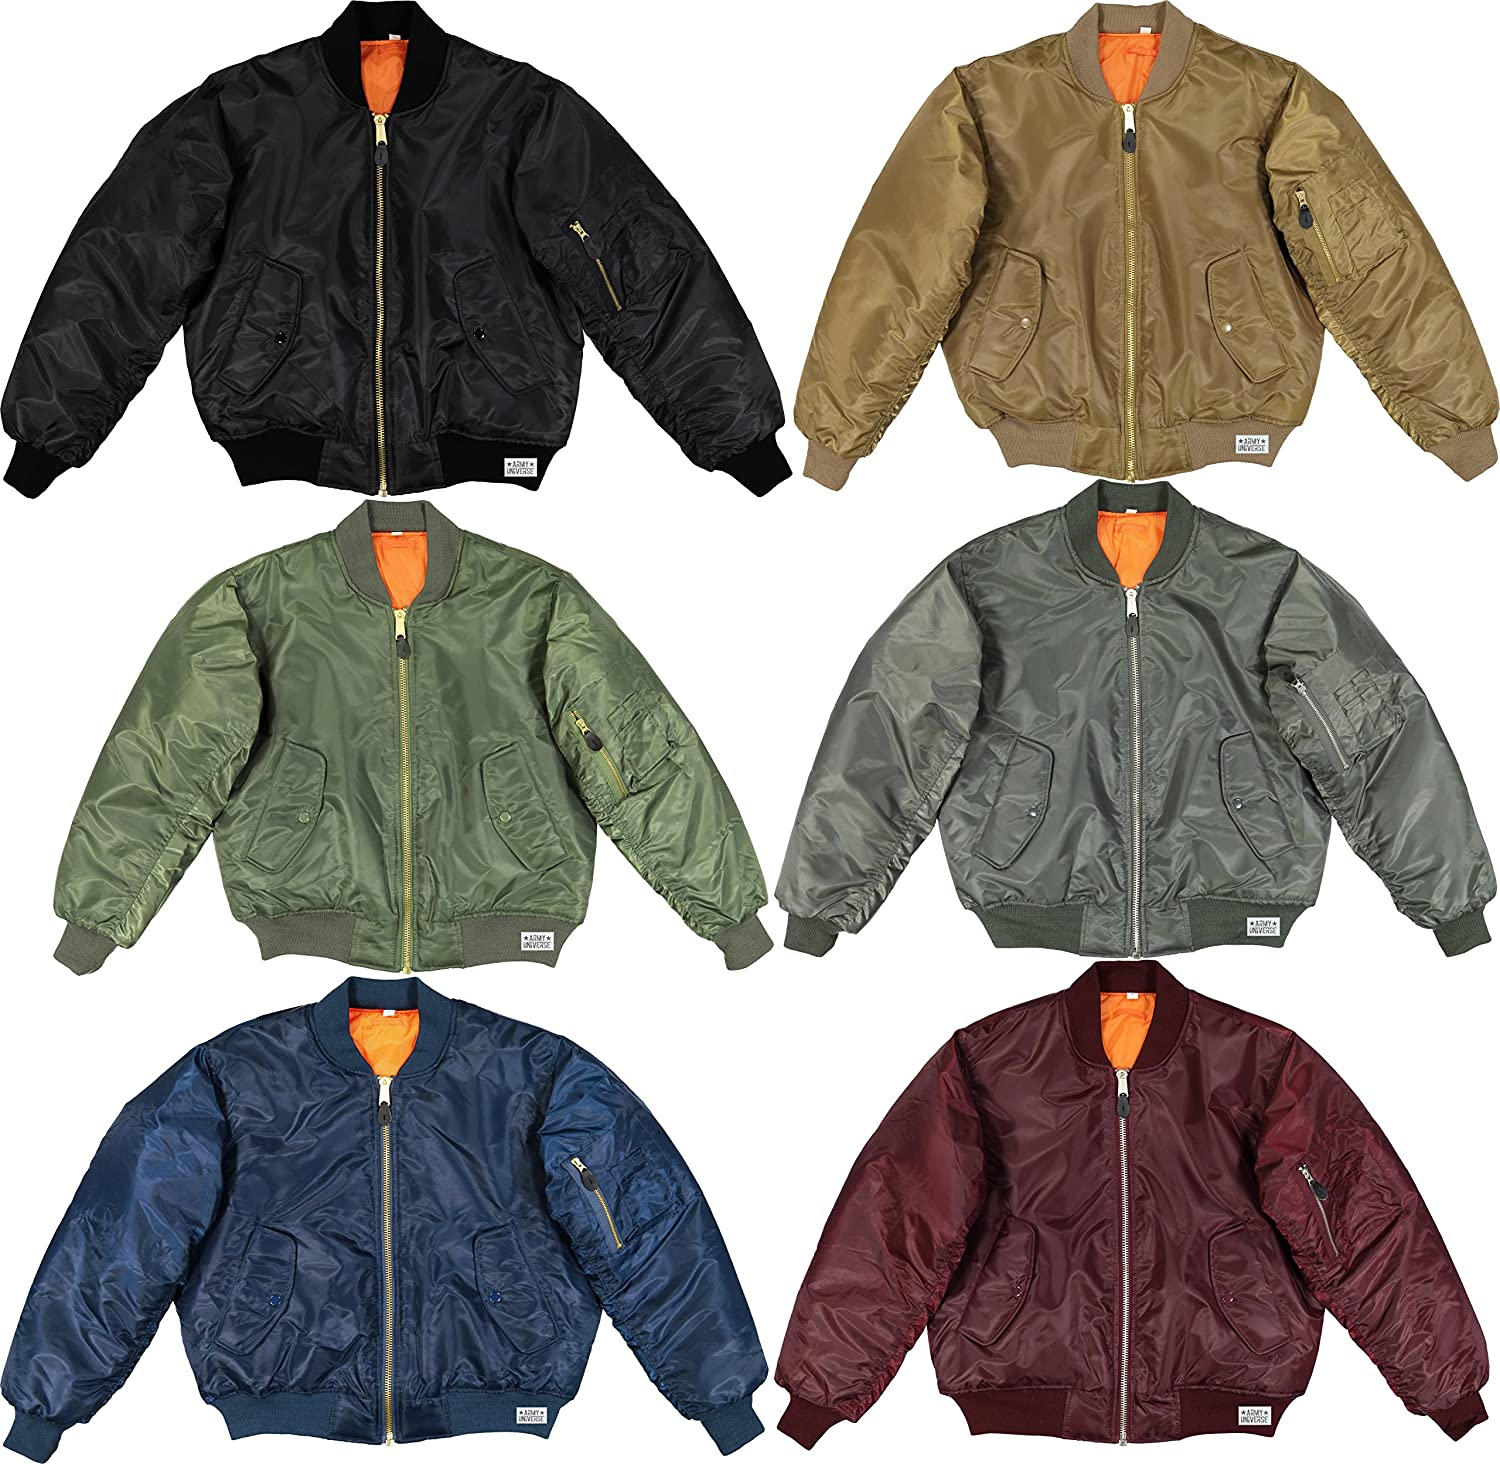 MA-1 Bomber Flight Jacket Reversible Air Force Military Coat with ... 3f36164840a